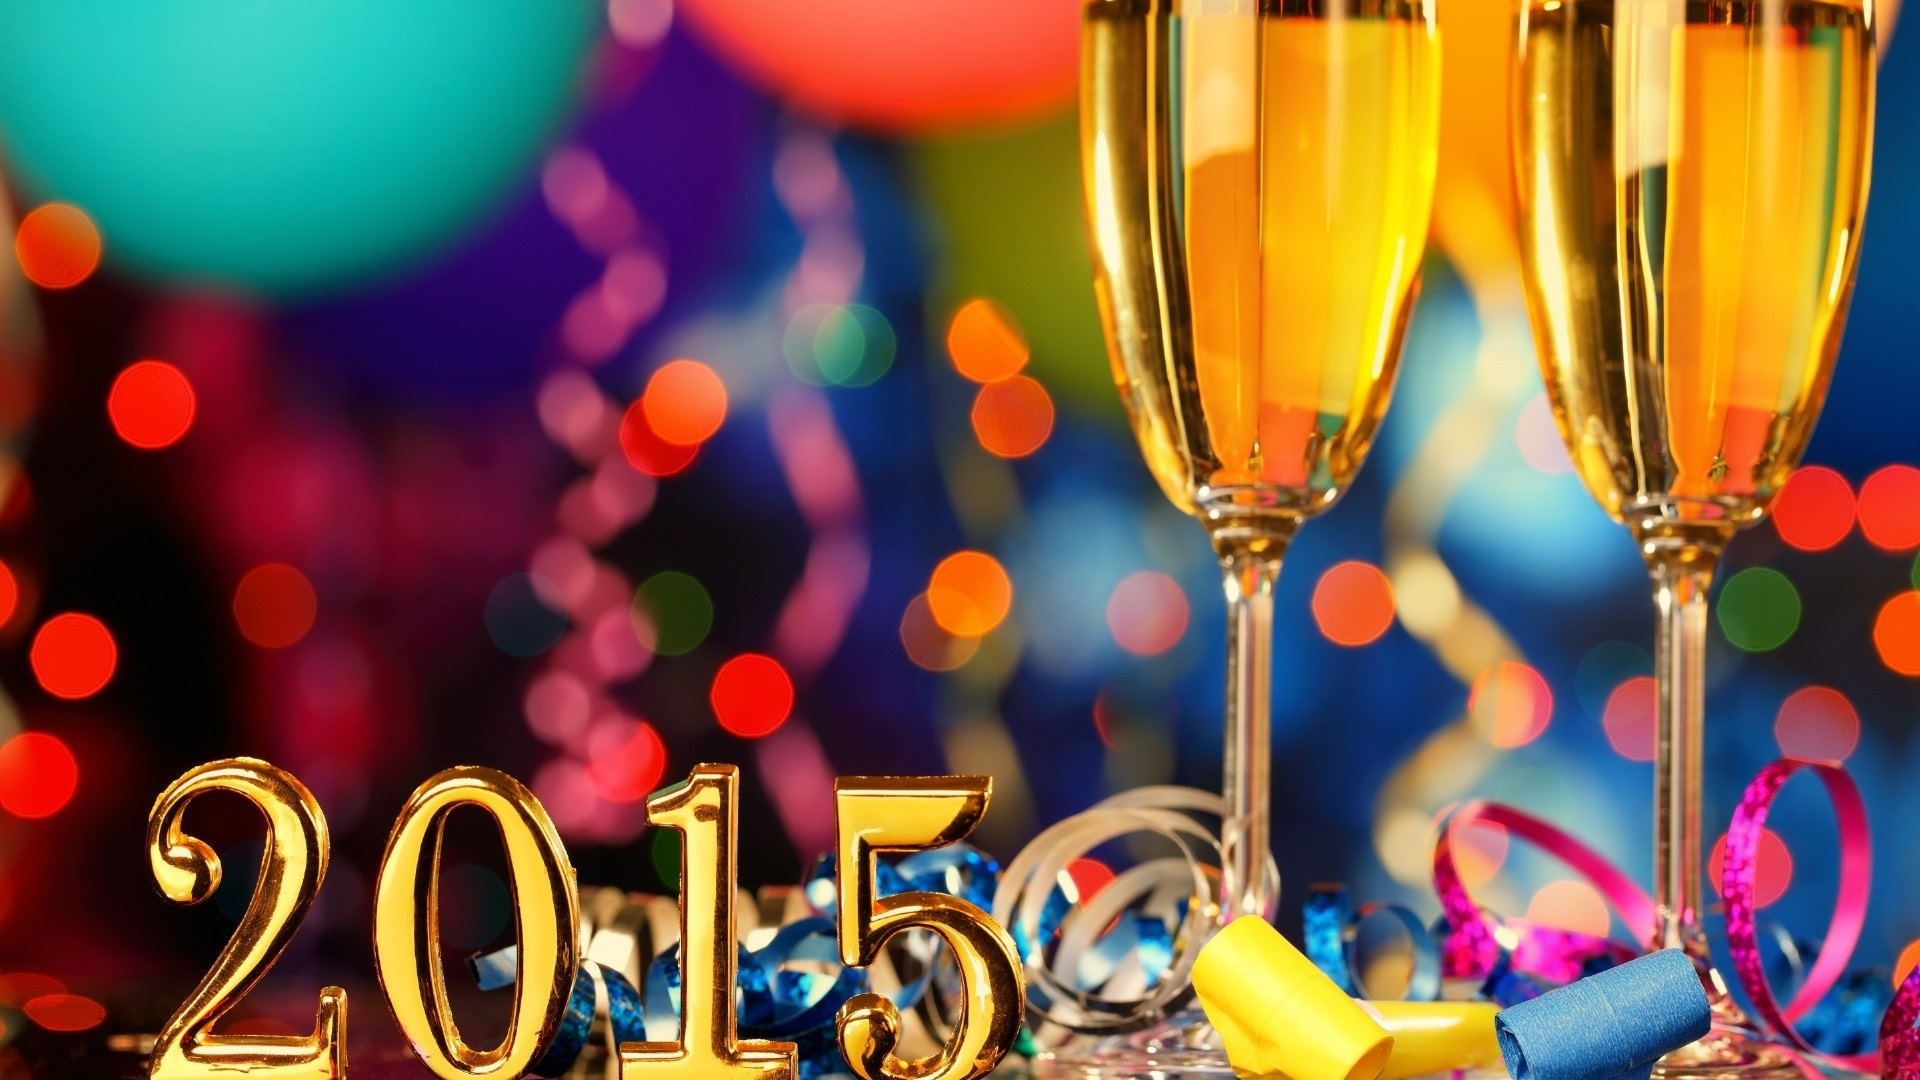 Happy New Year 2015 Wallpapers Collection Smash Blog Trends 1920x1080